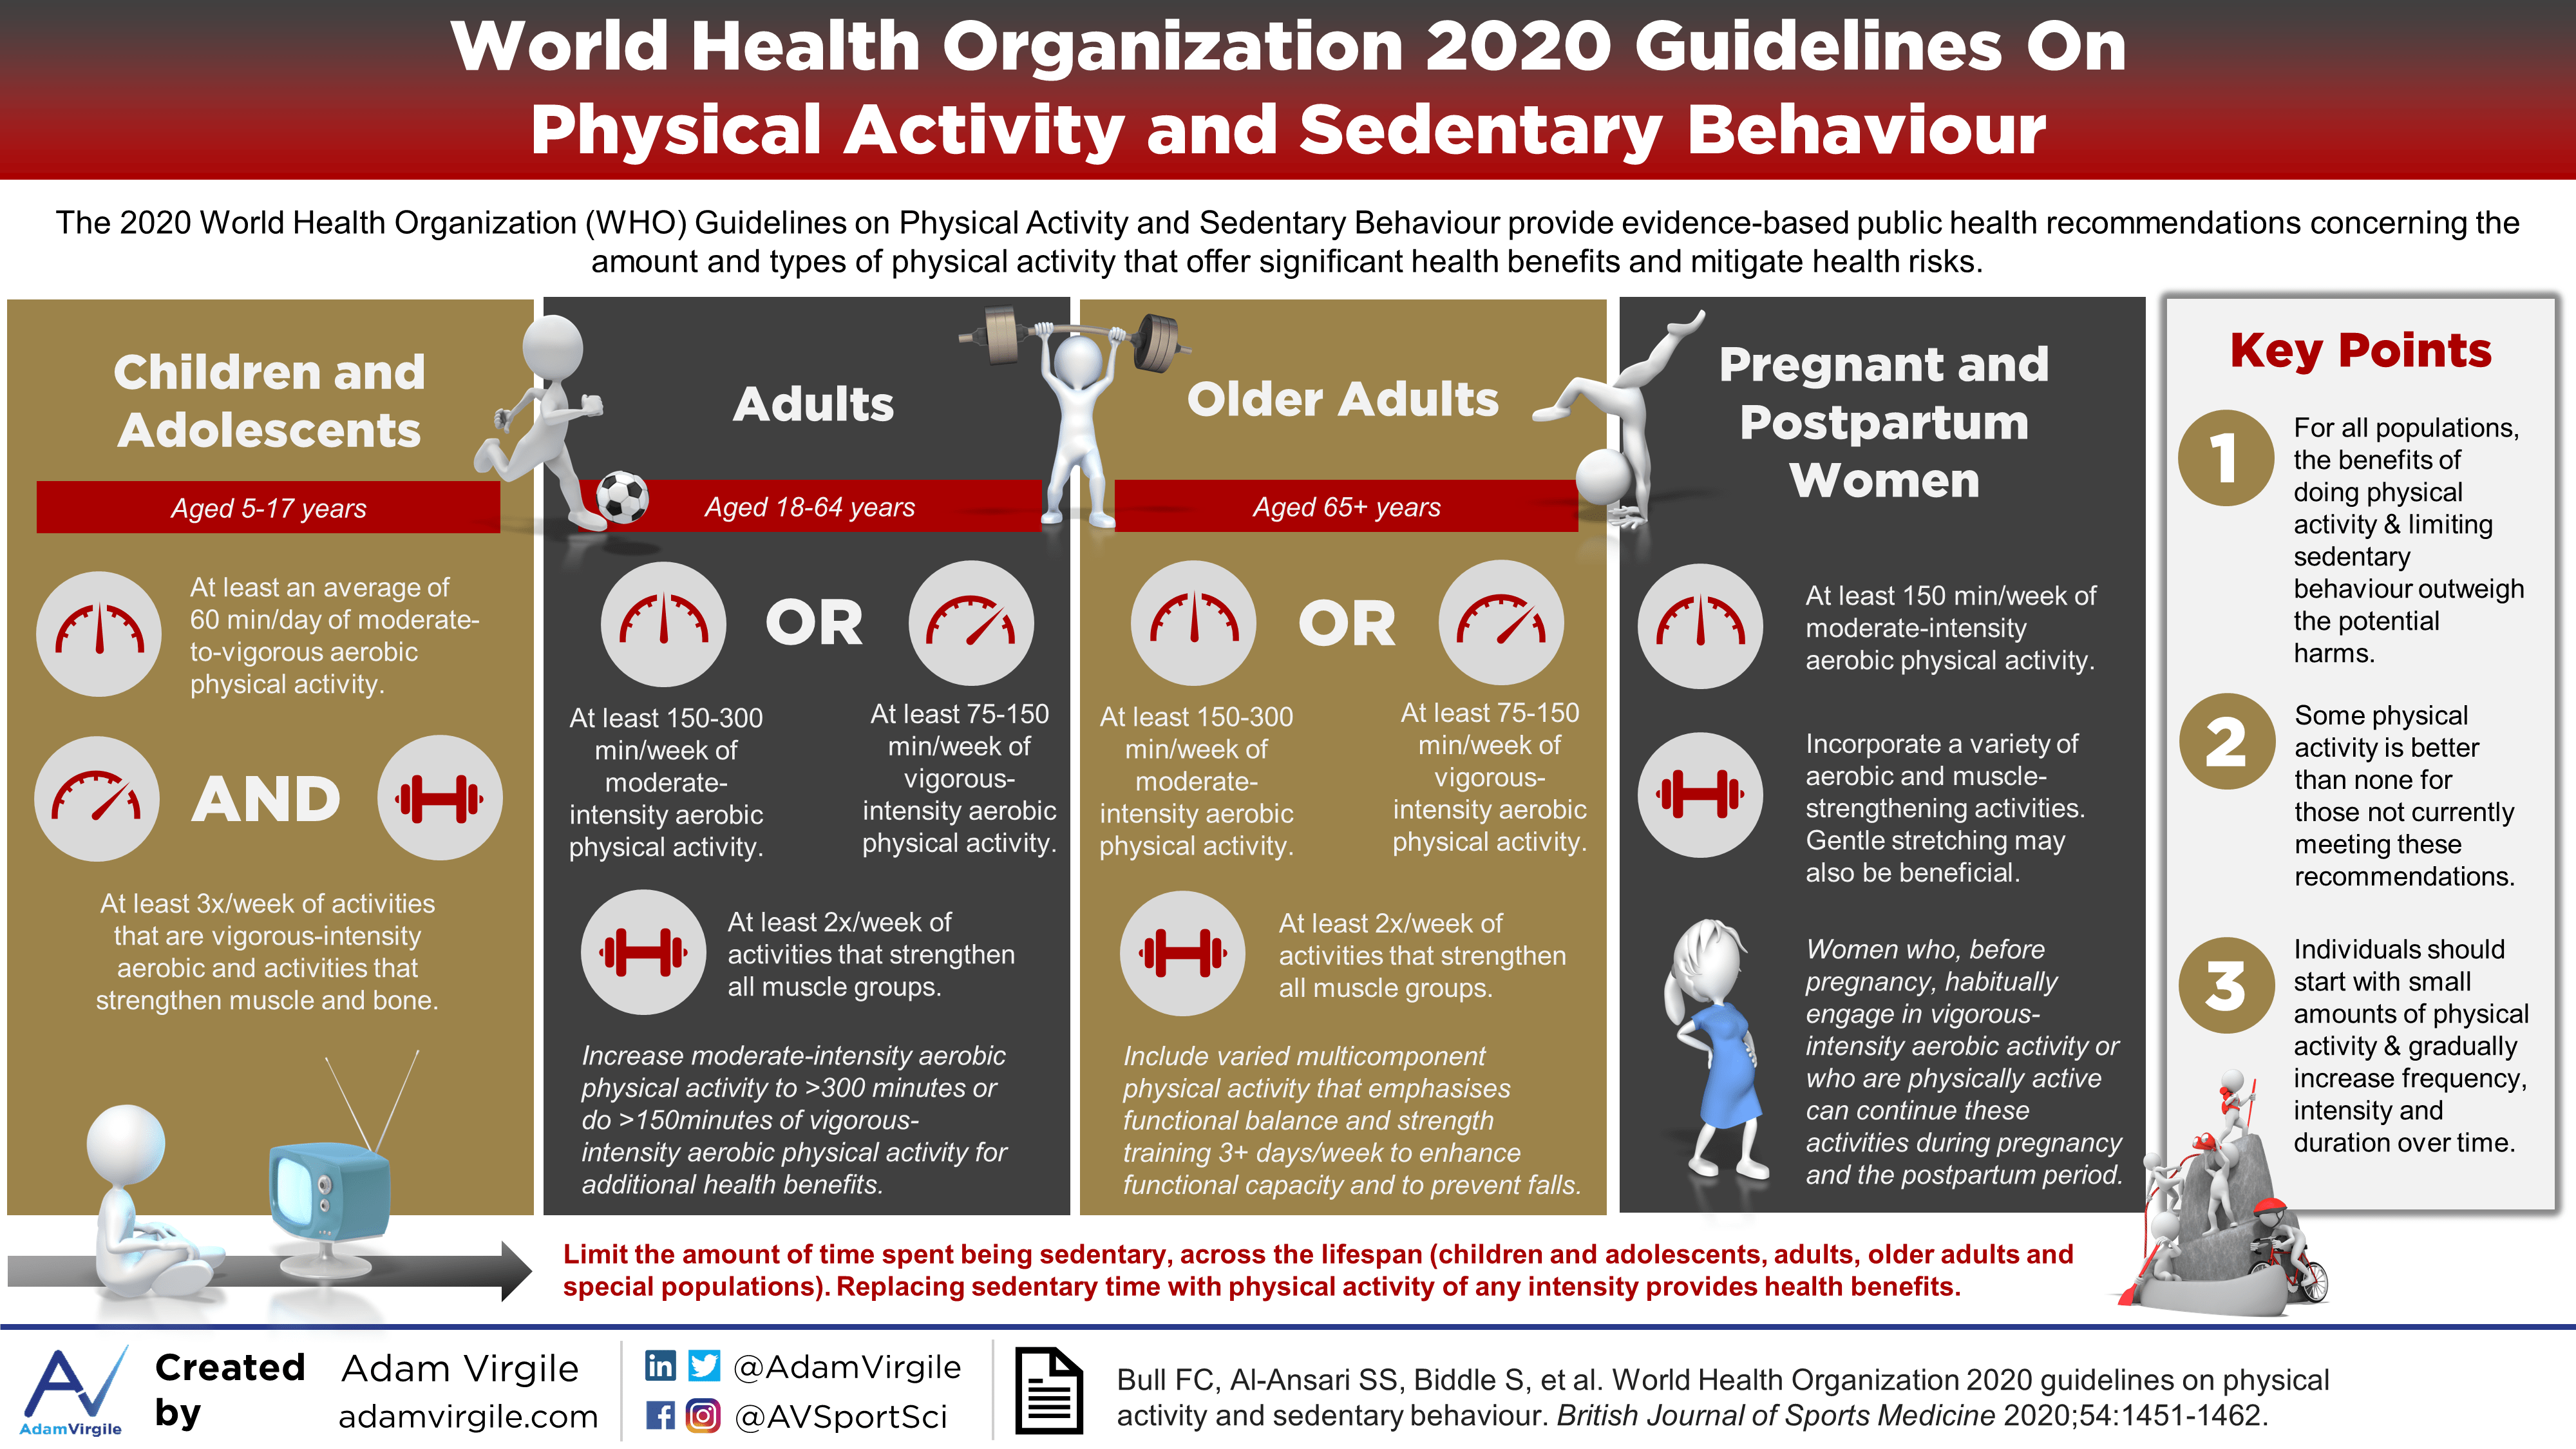 World Health Organization 2020 Guidelines on Physical Activity and Sedentary Behaviour